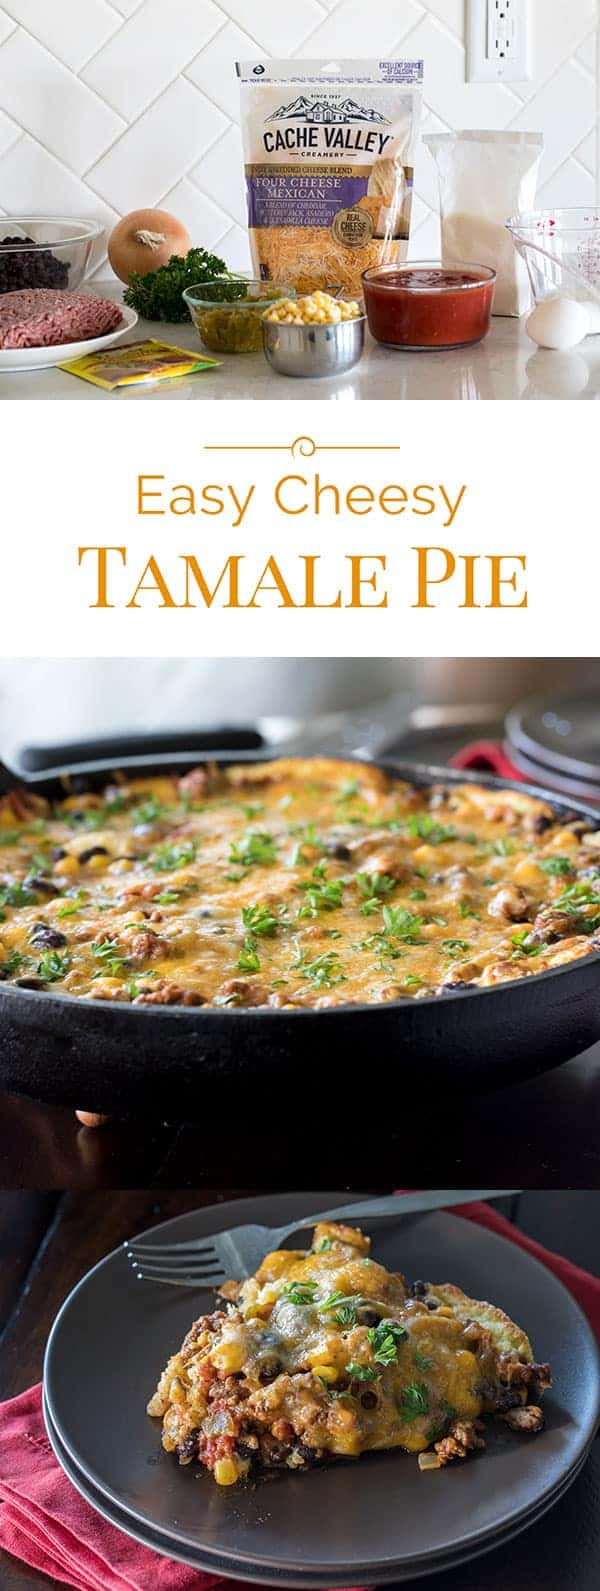 You can make this Easy Cheesy Tamale Pie with ingredients you probably already have on hand. It's perfect now that kids are back to school and cool weather is right around the corner.